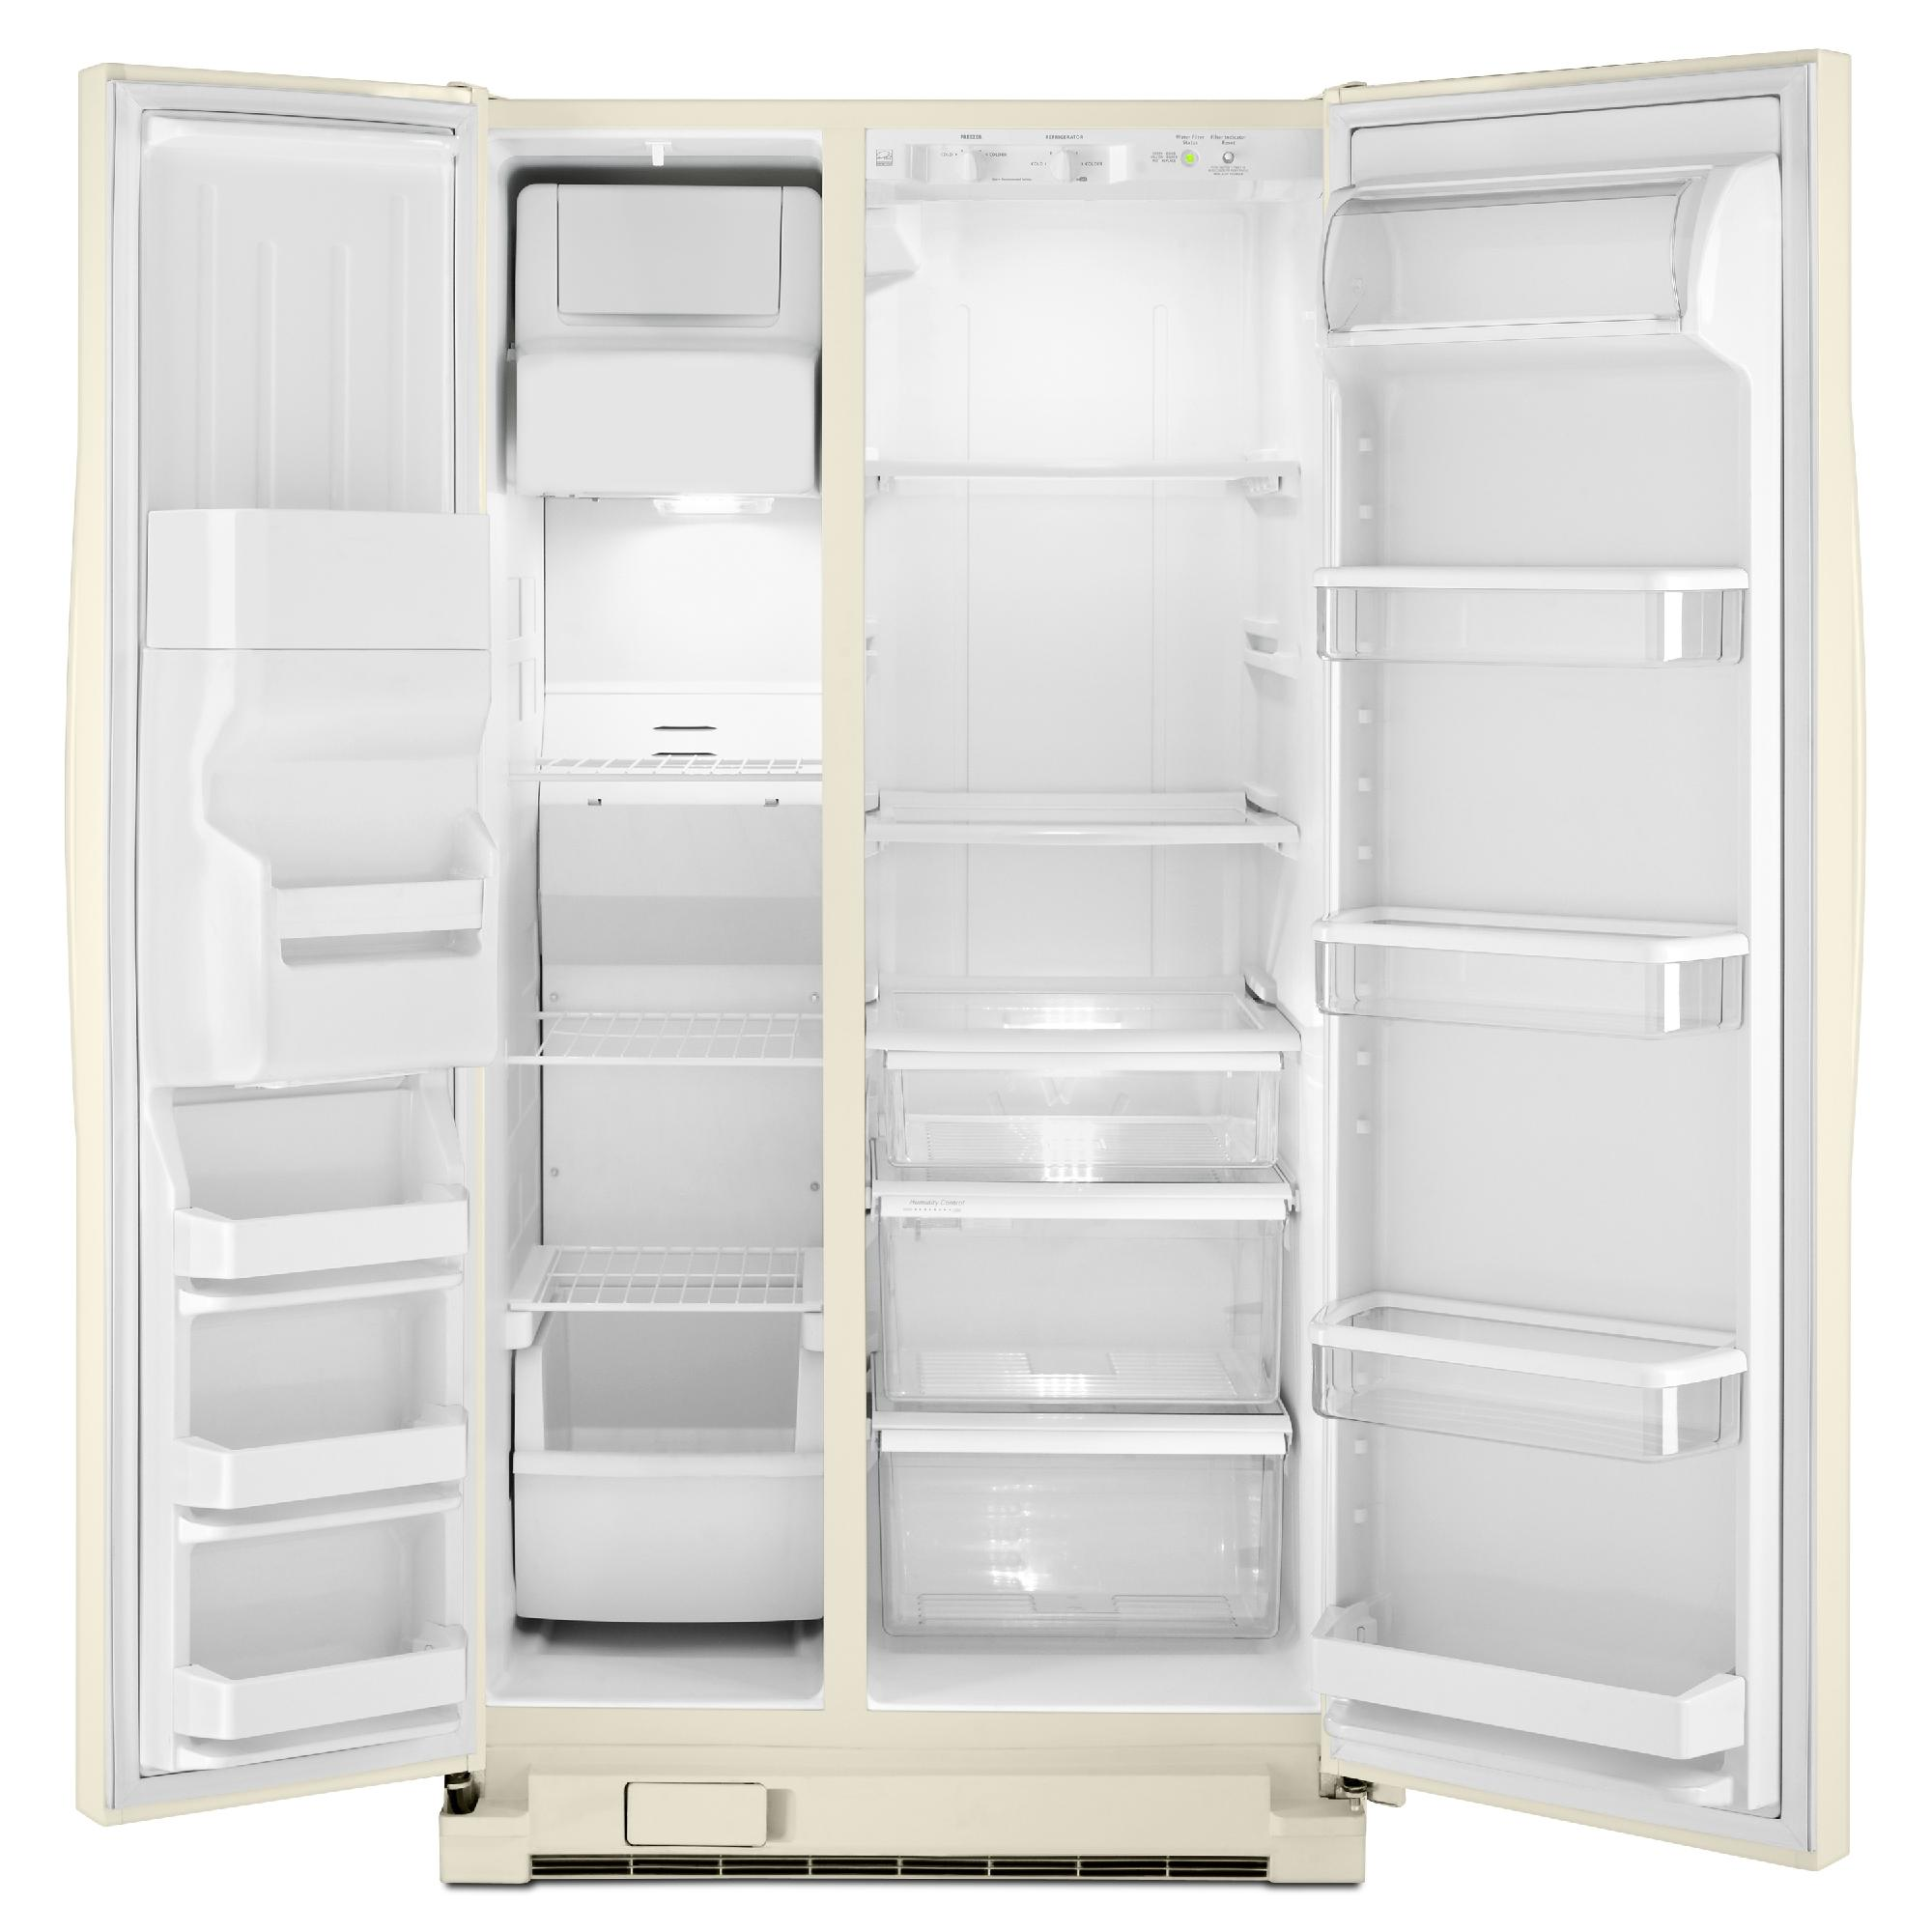 Whirlpool WRS325FDAT 24.9 cu. ft. Side-by-Side Refrigerator w/ Accu-Chill™- Bisque